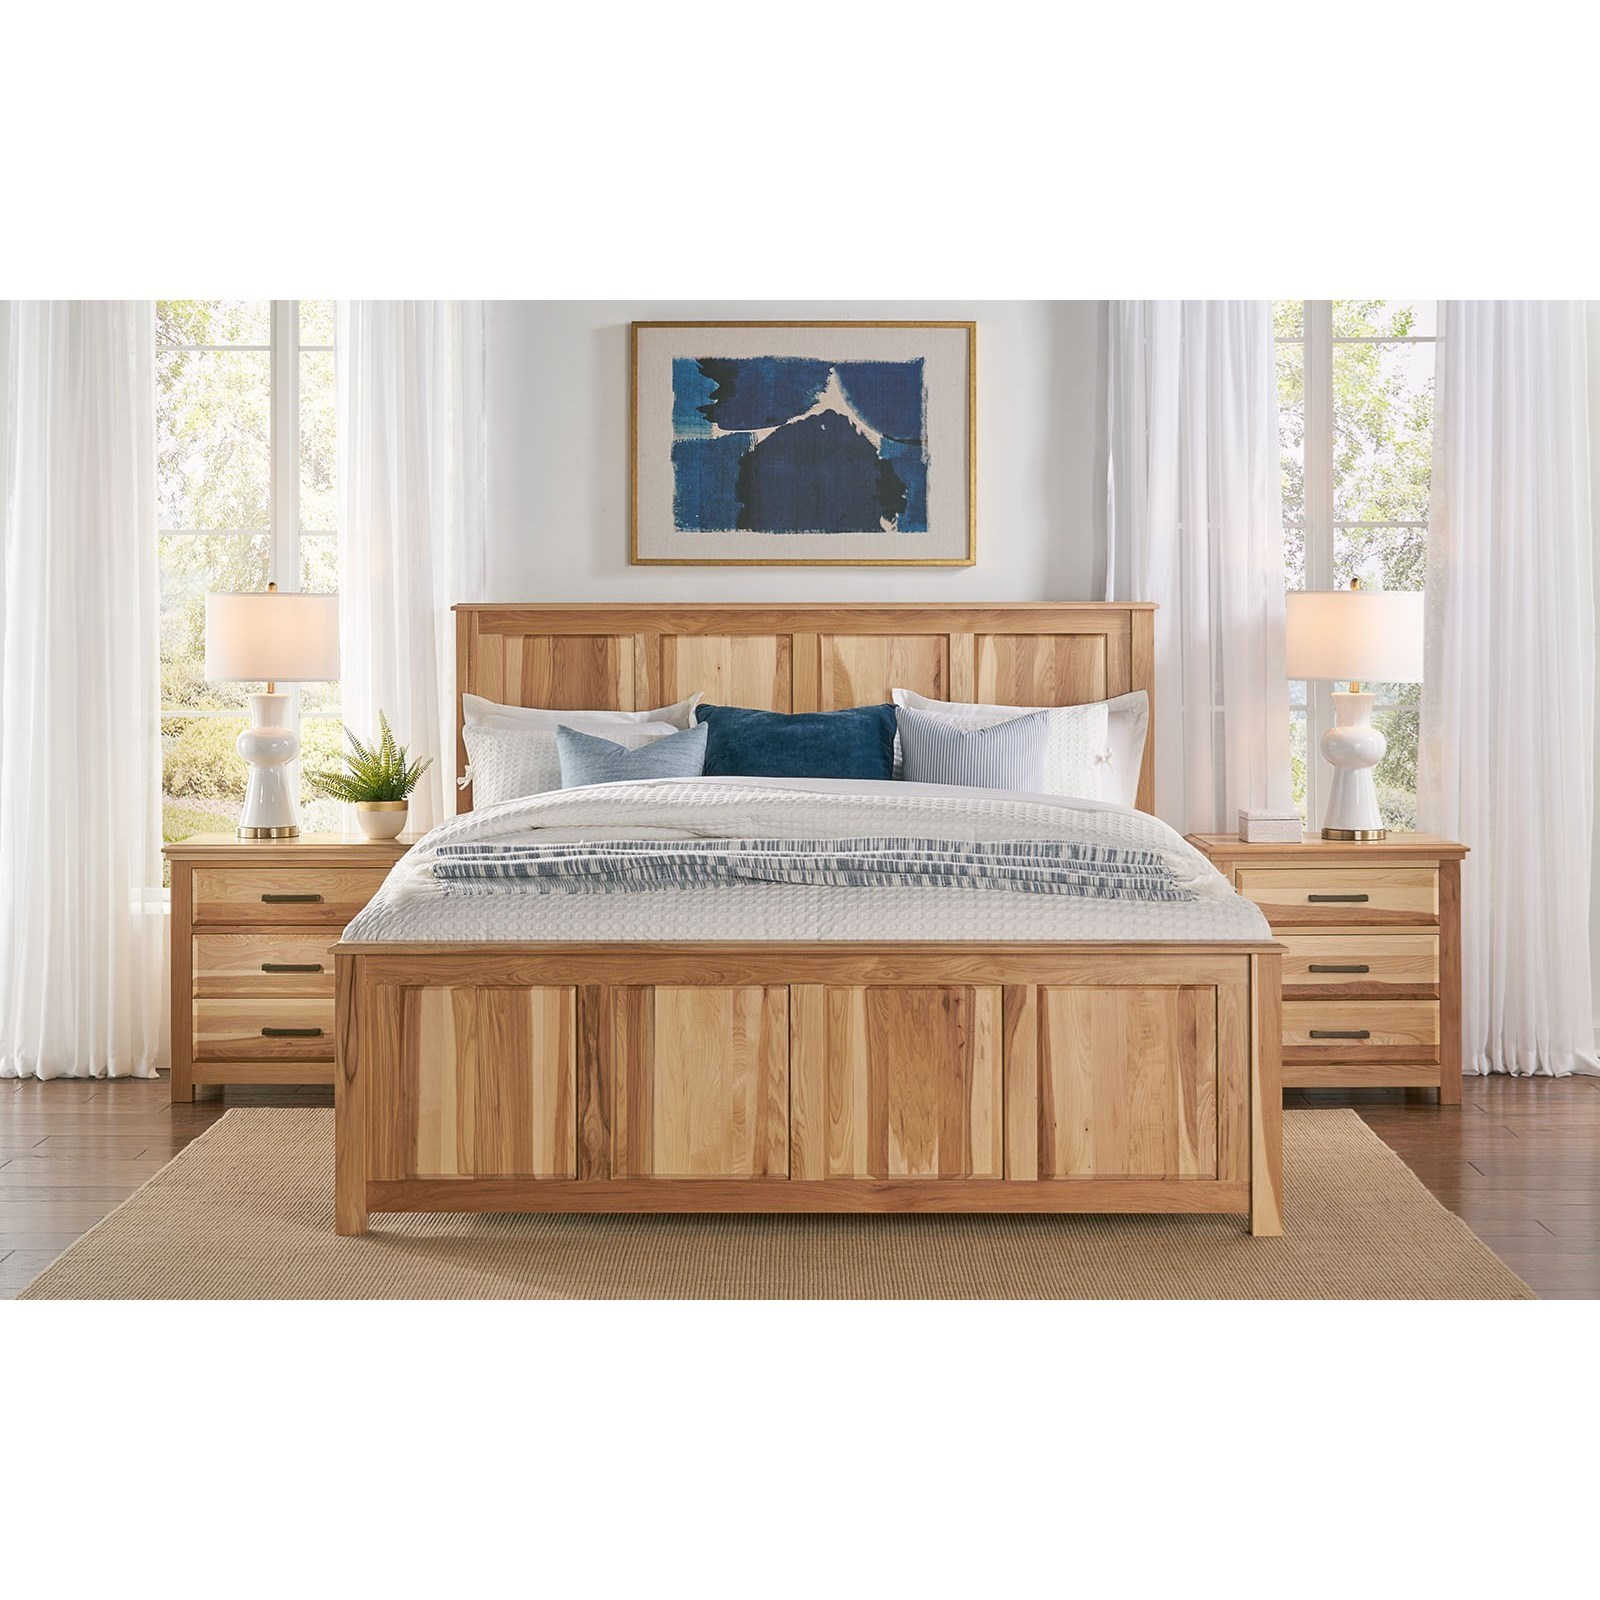 Camas Queen Panel Bed by A-A at Walker's Furniture